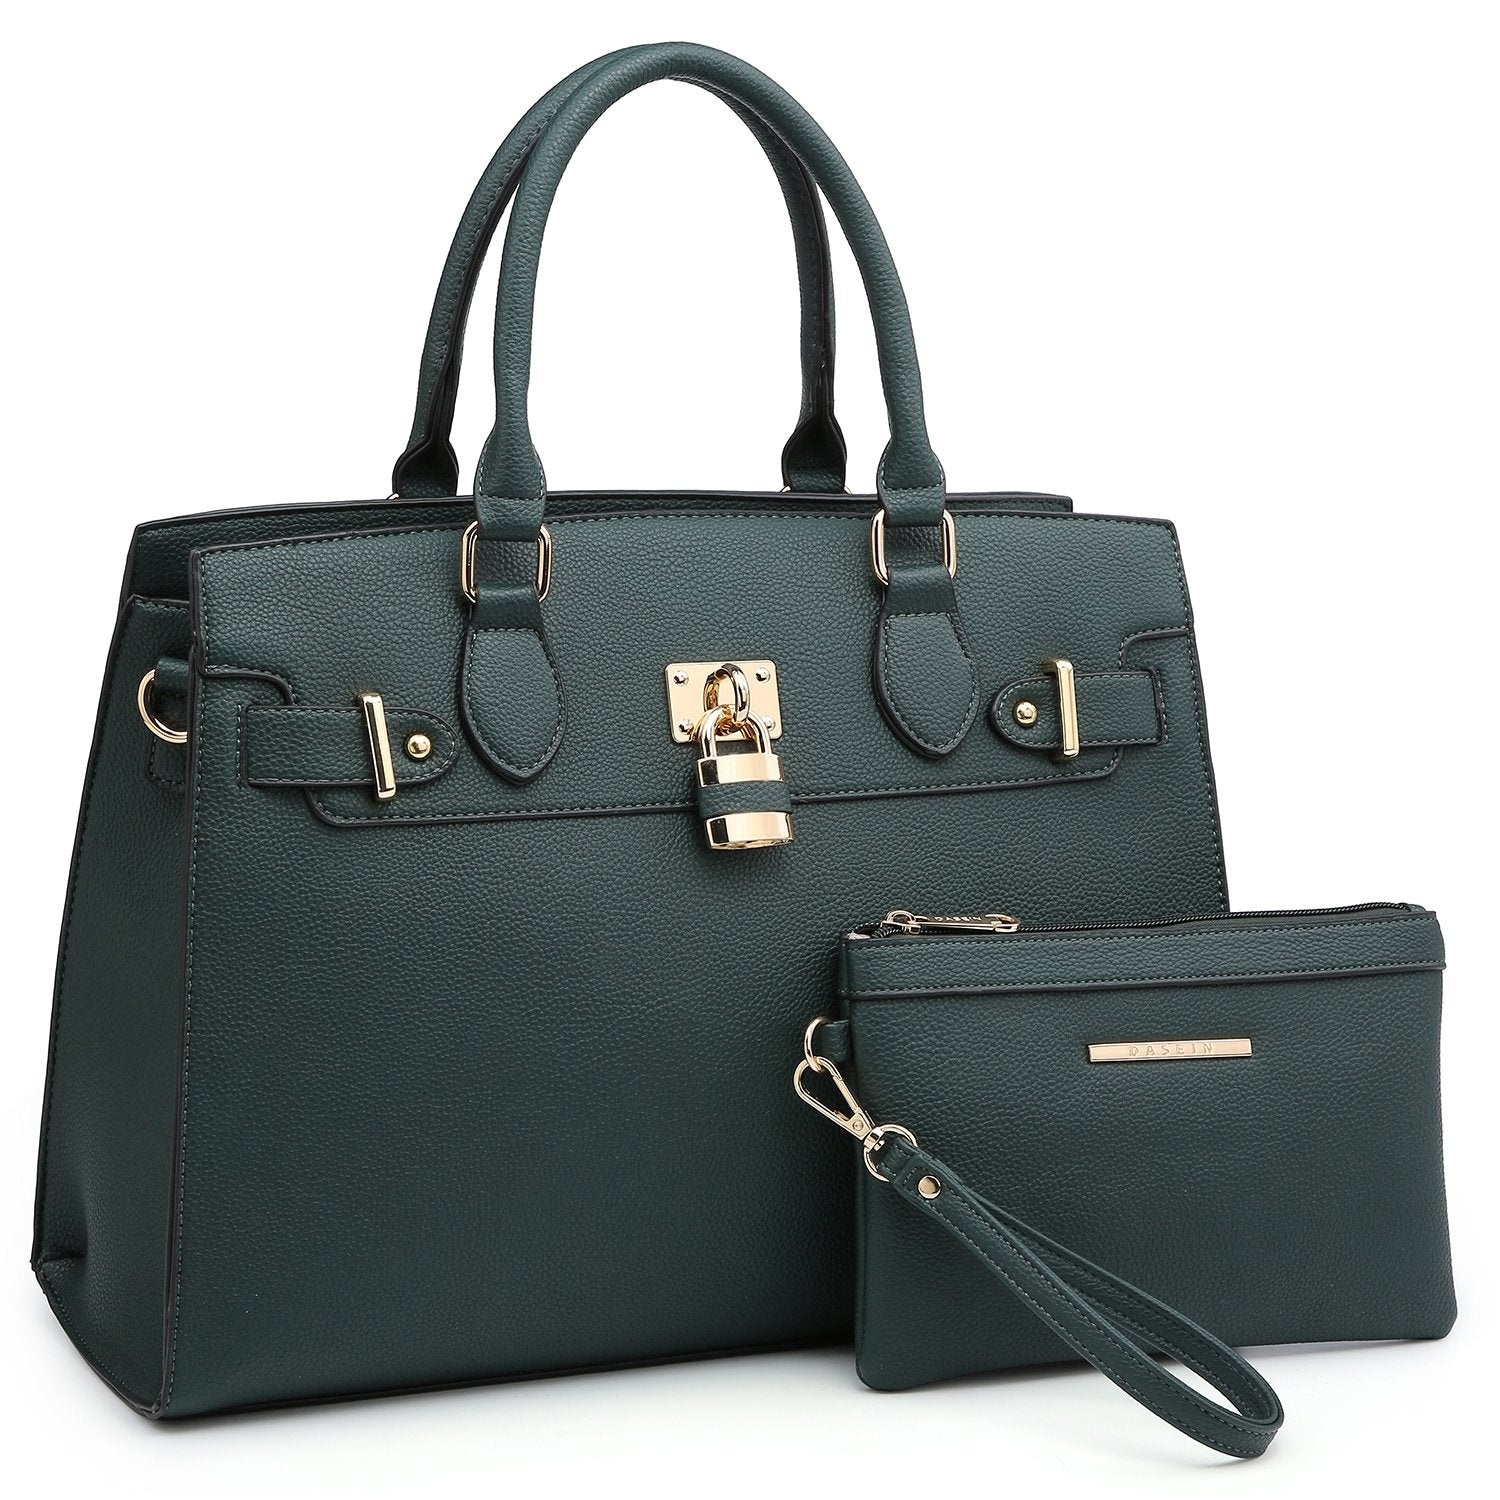 Classic Padlock Handbag with Matching Wallet-Handbags & Purses-Dasein Bags